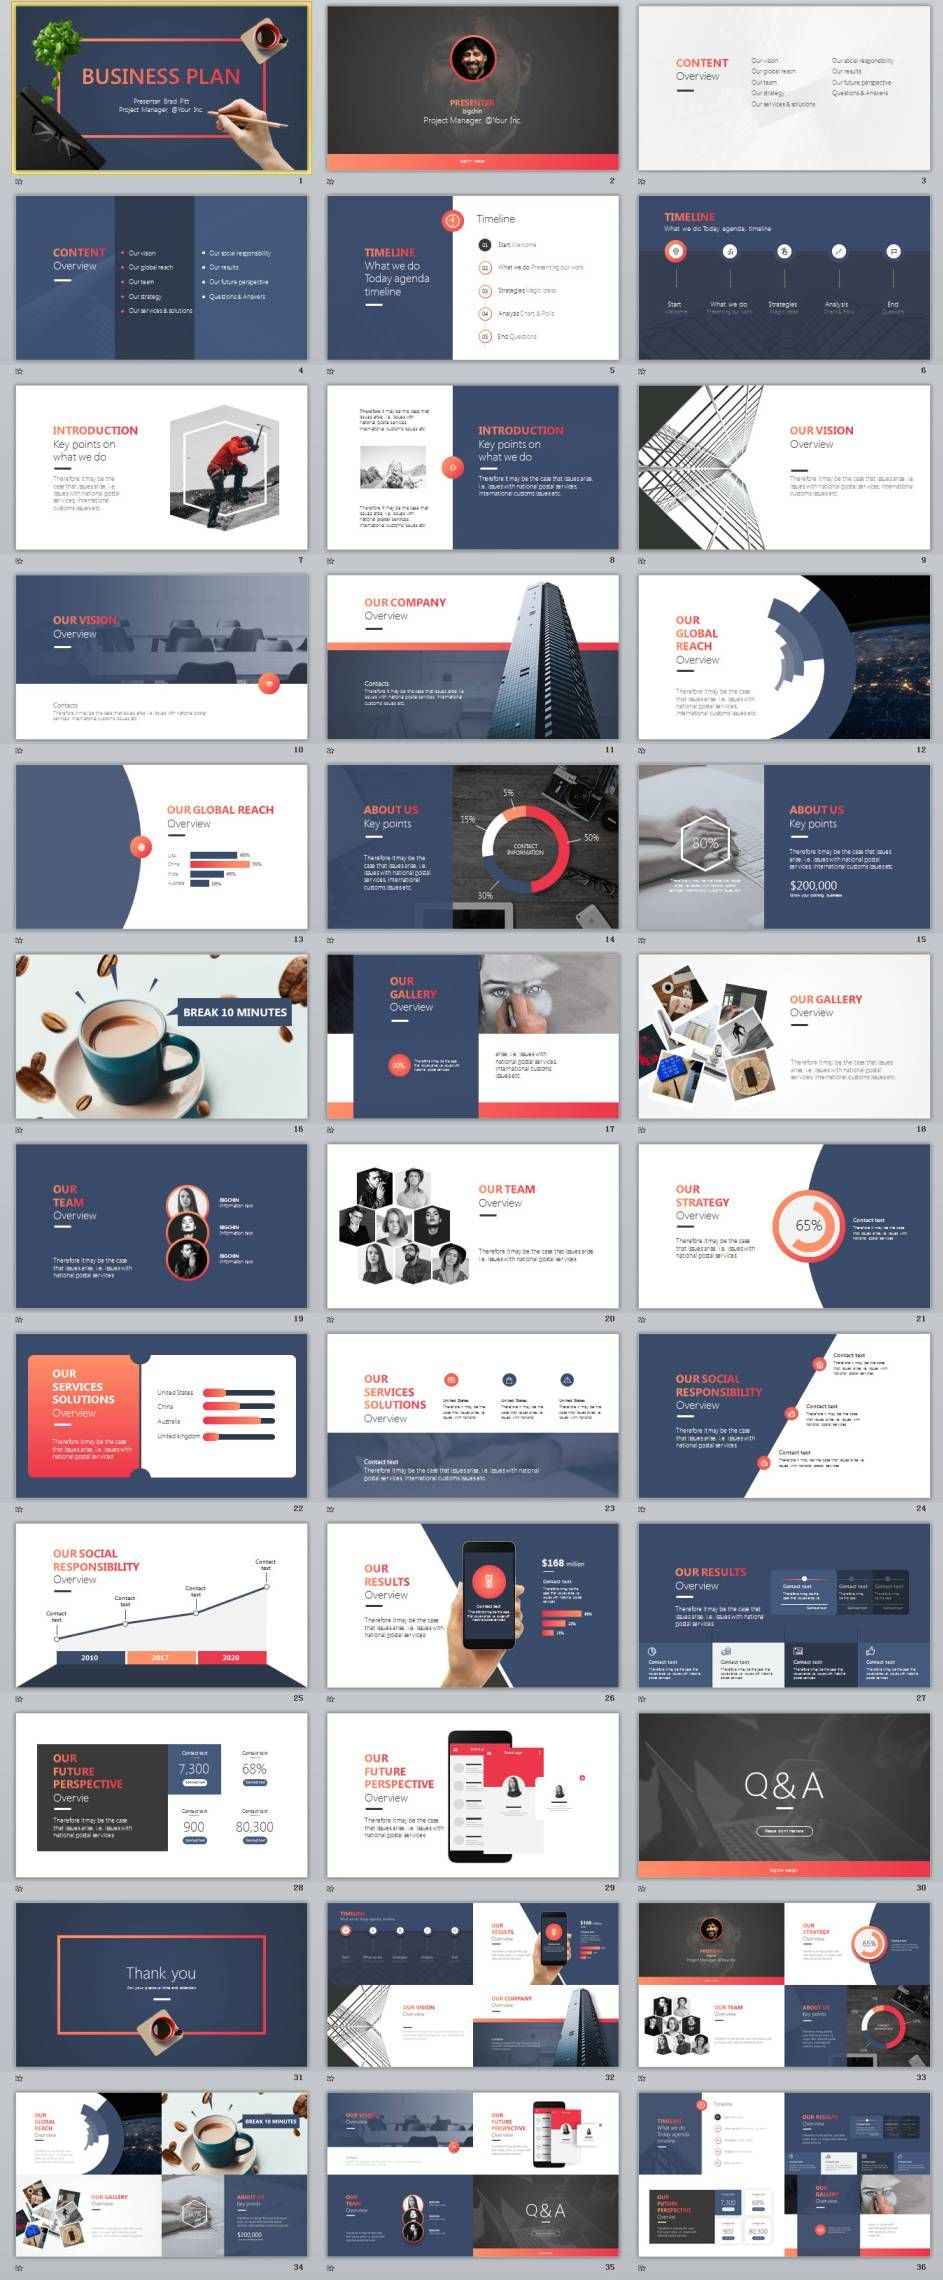 30+ Best tech Business plan PowerPoint template | Business planning ...